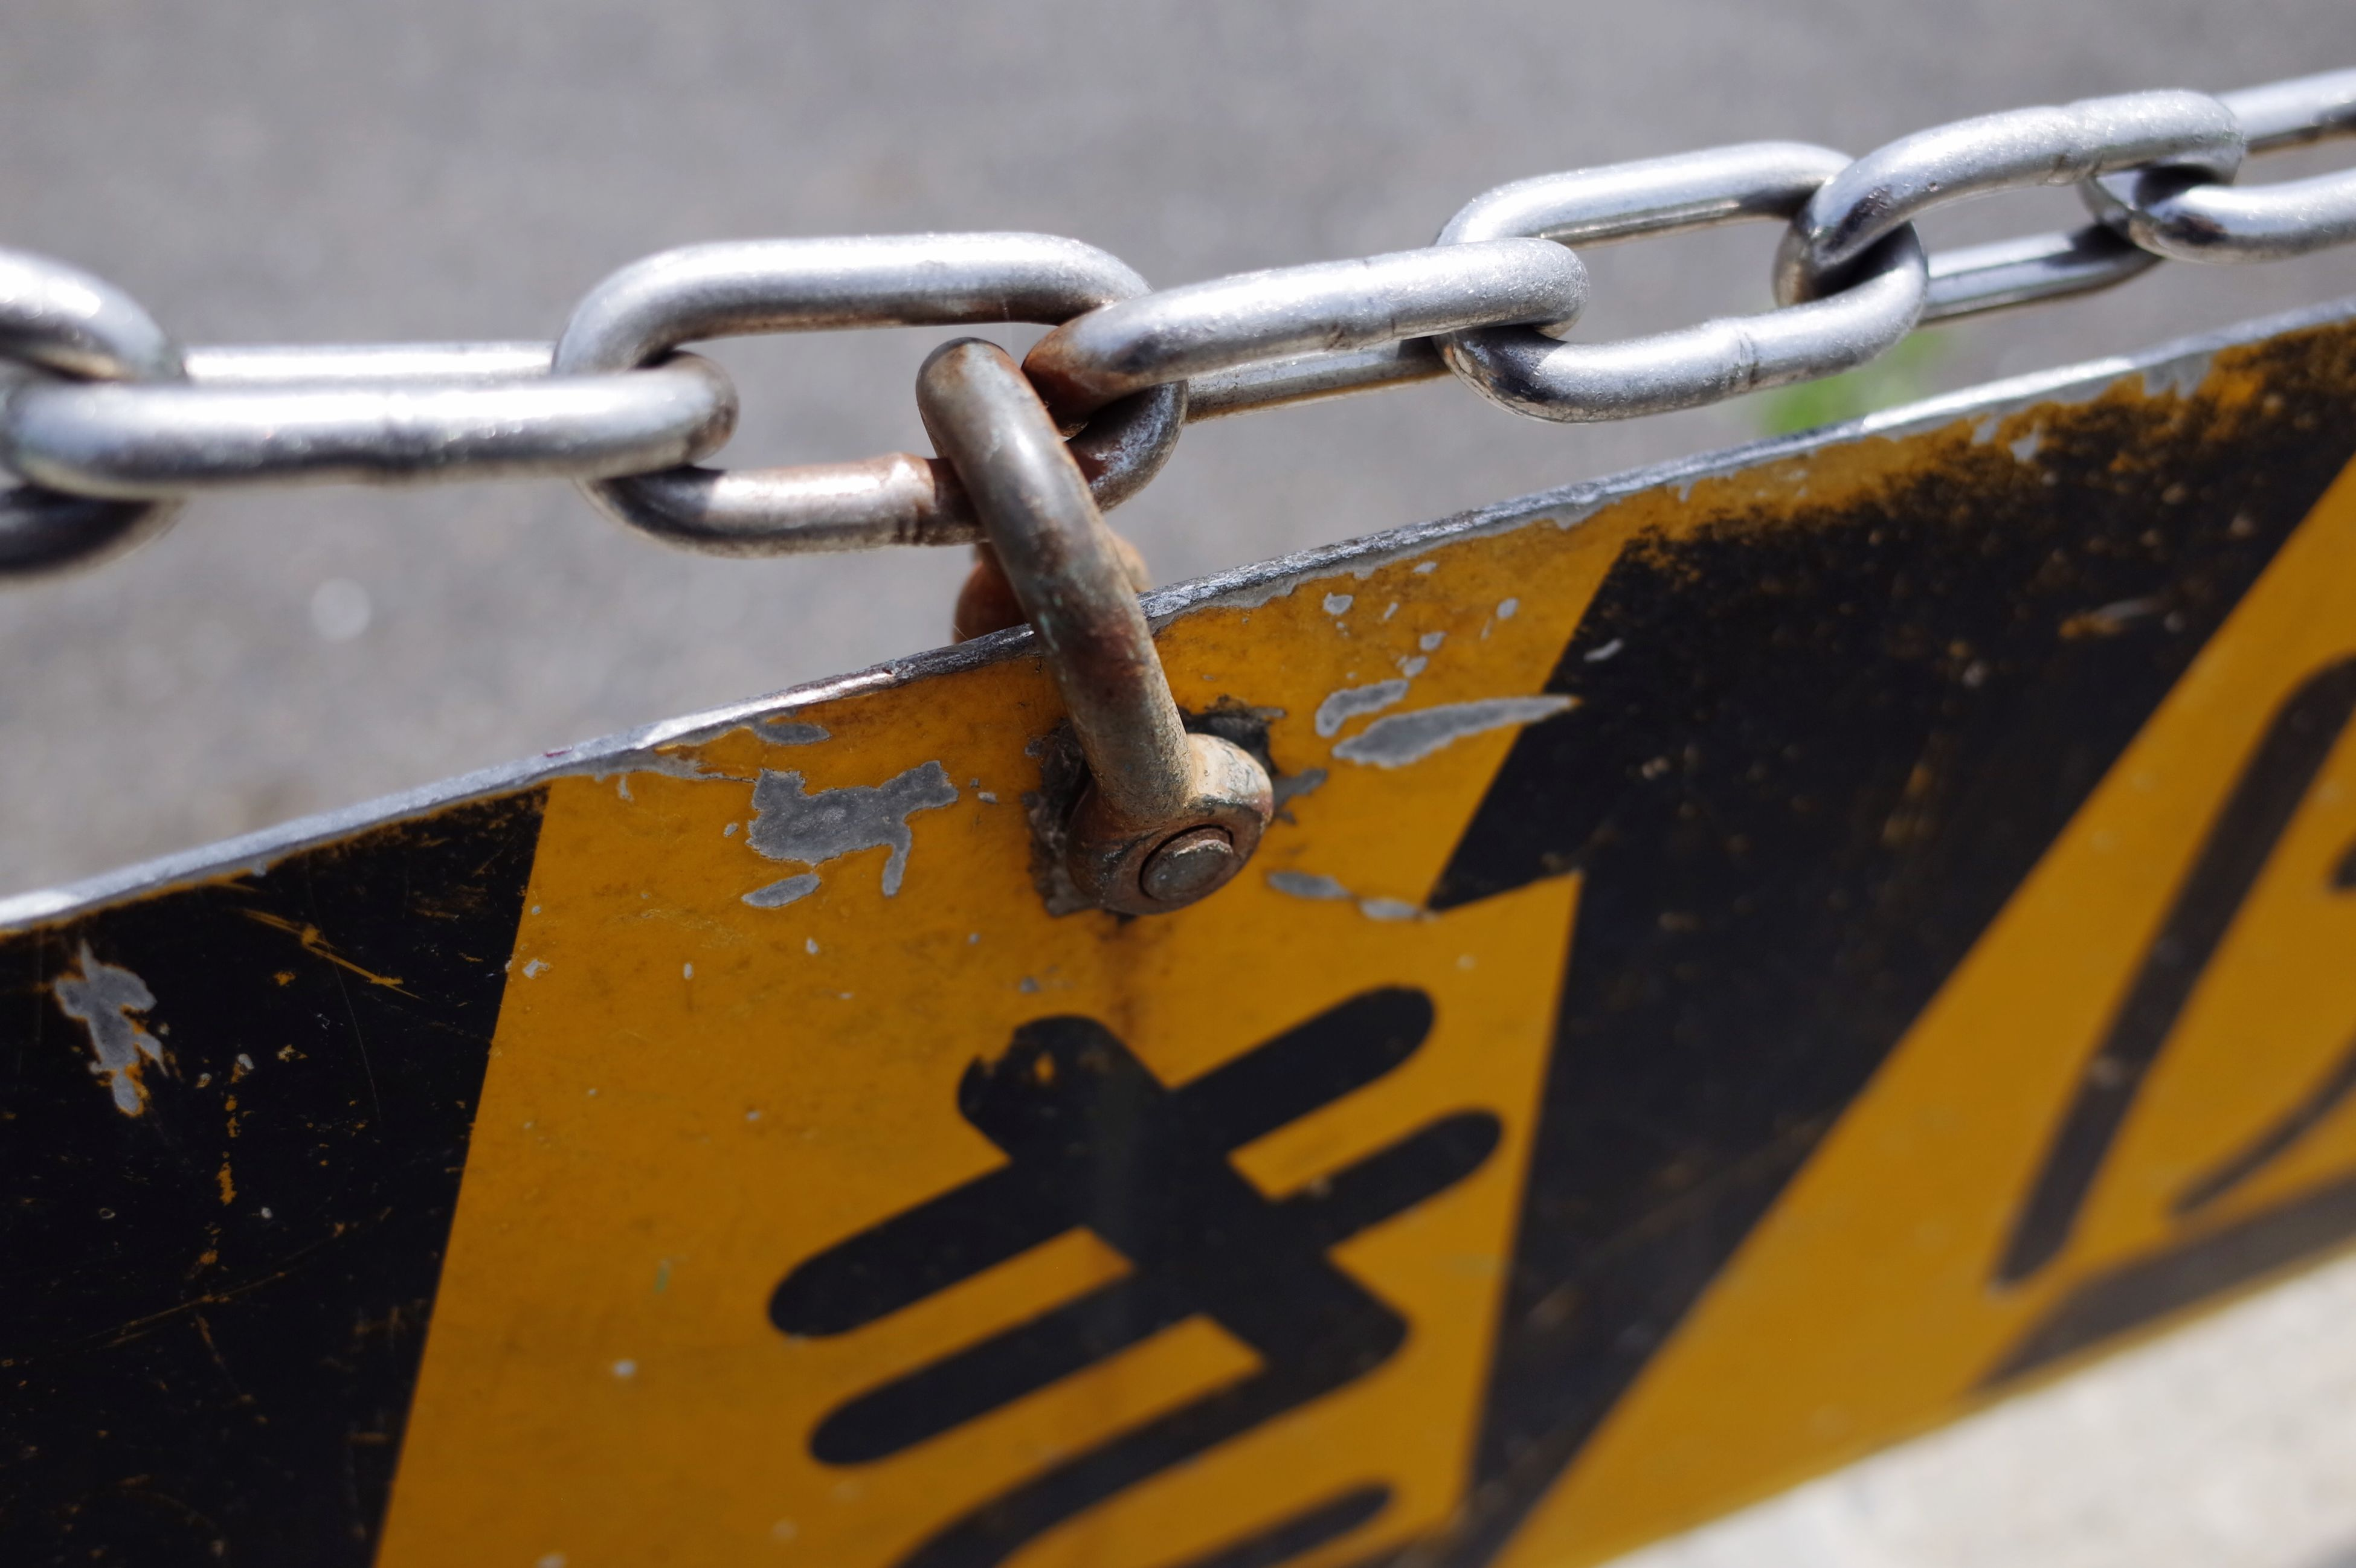 metal, safety, protection, security, padlock, close-up, transportation, metallic, focus on foreground, yellow, lock, text, mode of transport, chain, rusty, fence, communication, chainlink fence, guidance, day